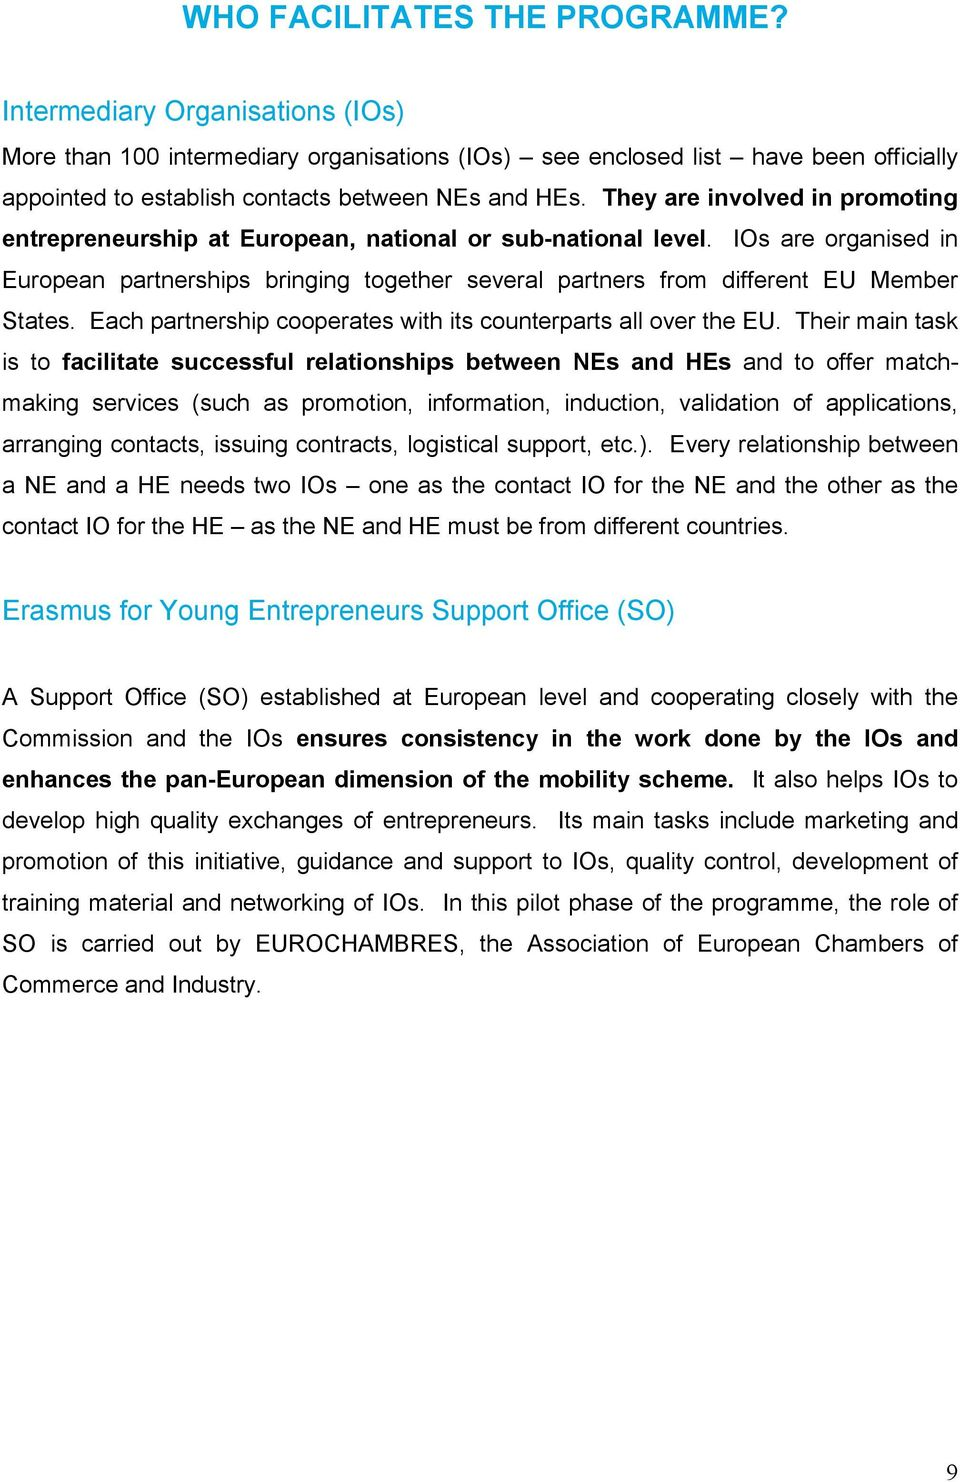 They are involved in promoting entrepreneurship at European, national or sub-national level.